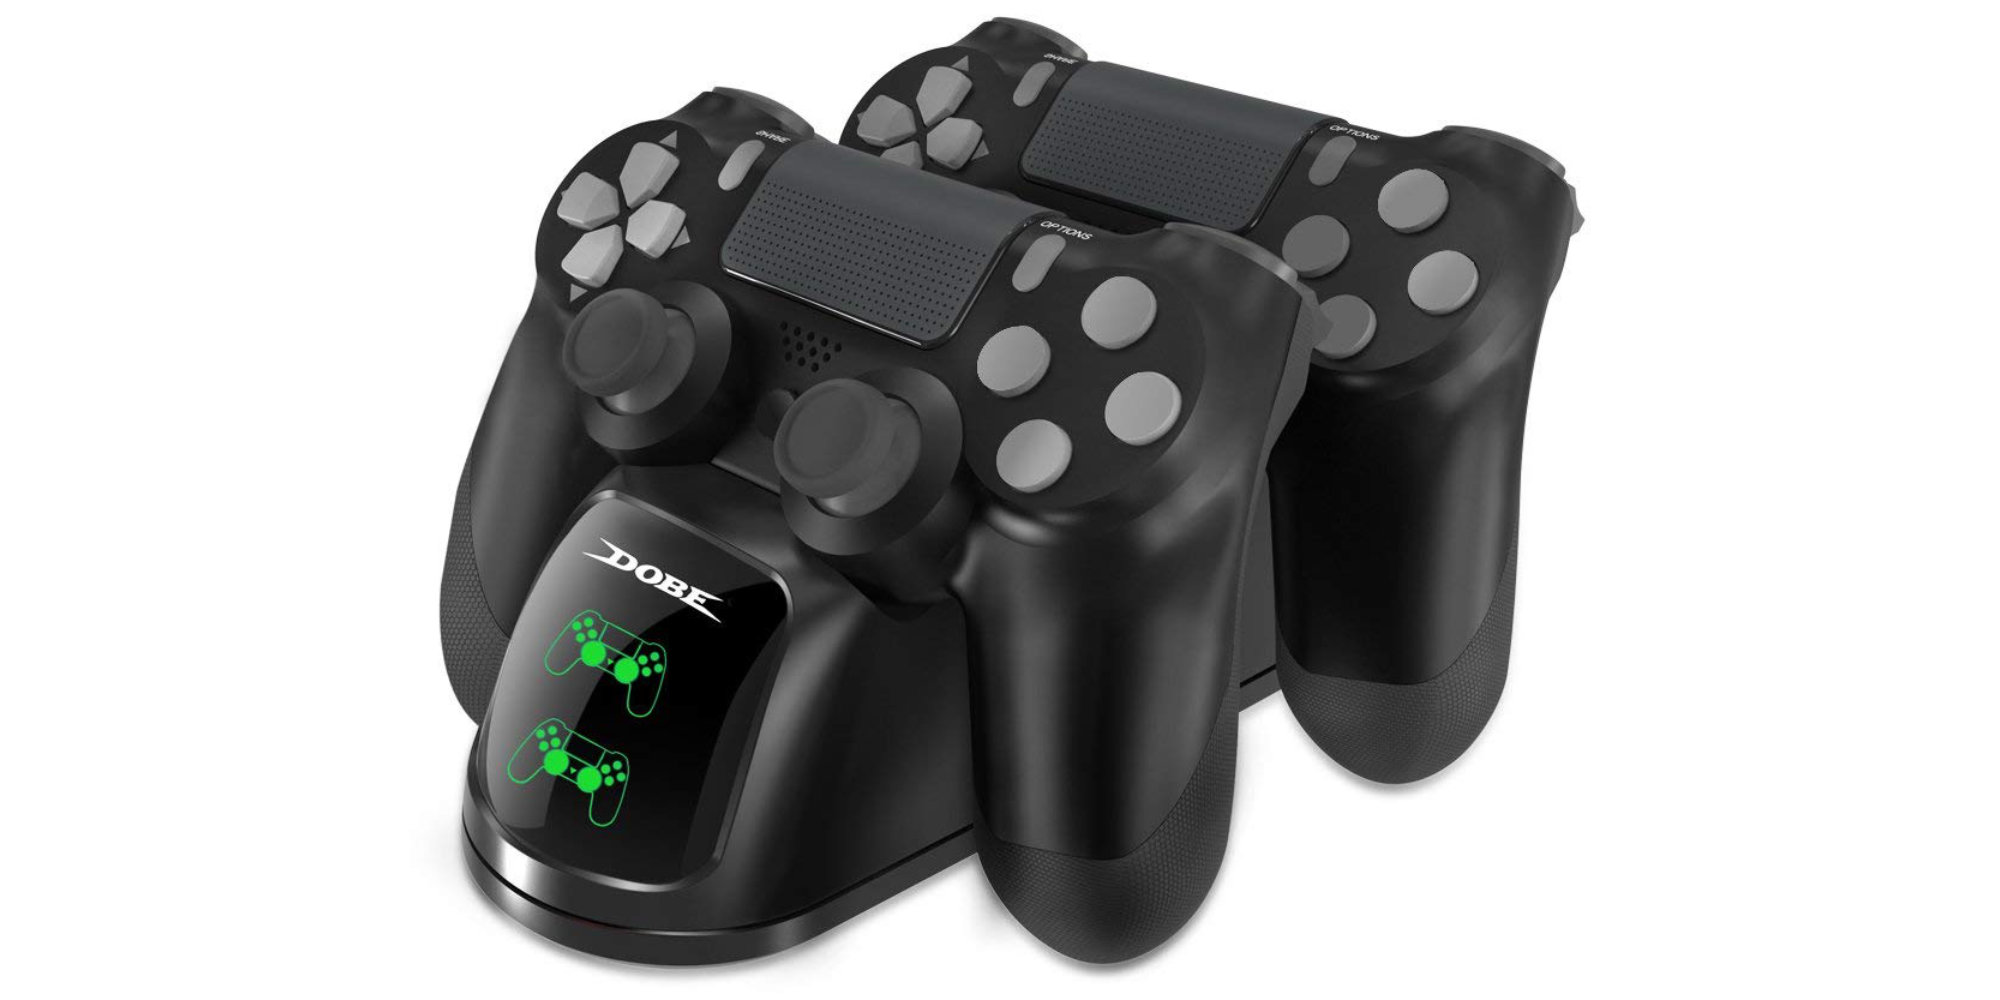 Declutter your gaming area w/ a PlayStation 4 Controller Charging Dock: $9 (Save 35%)